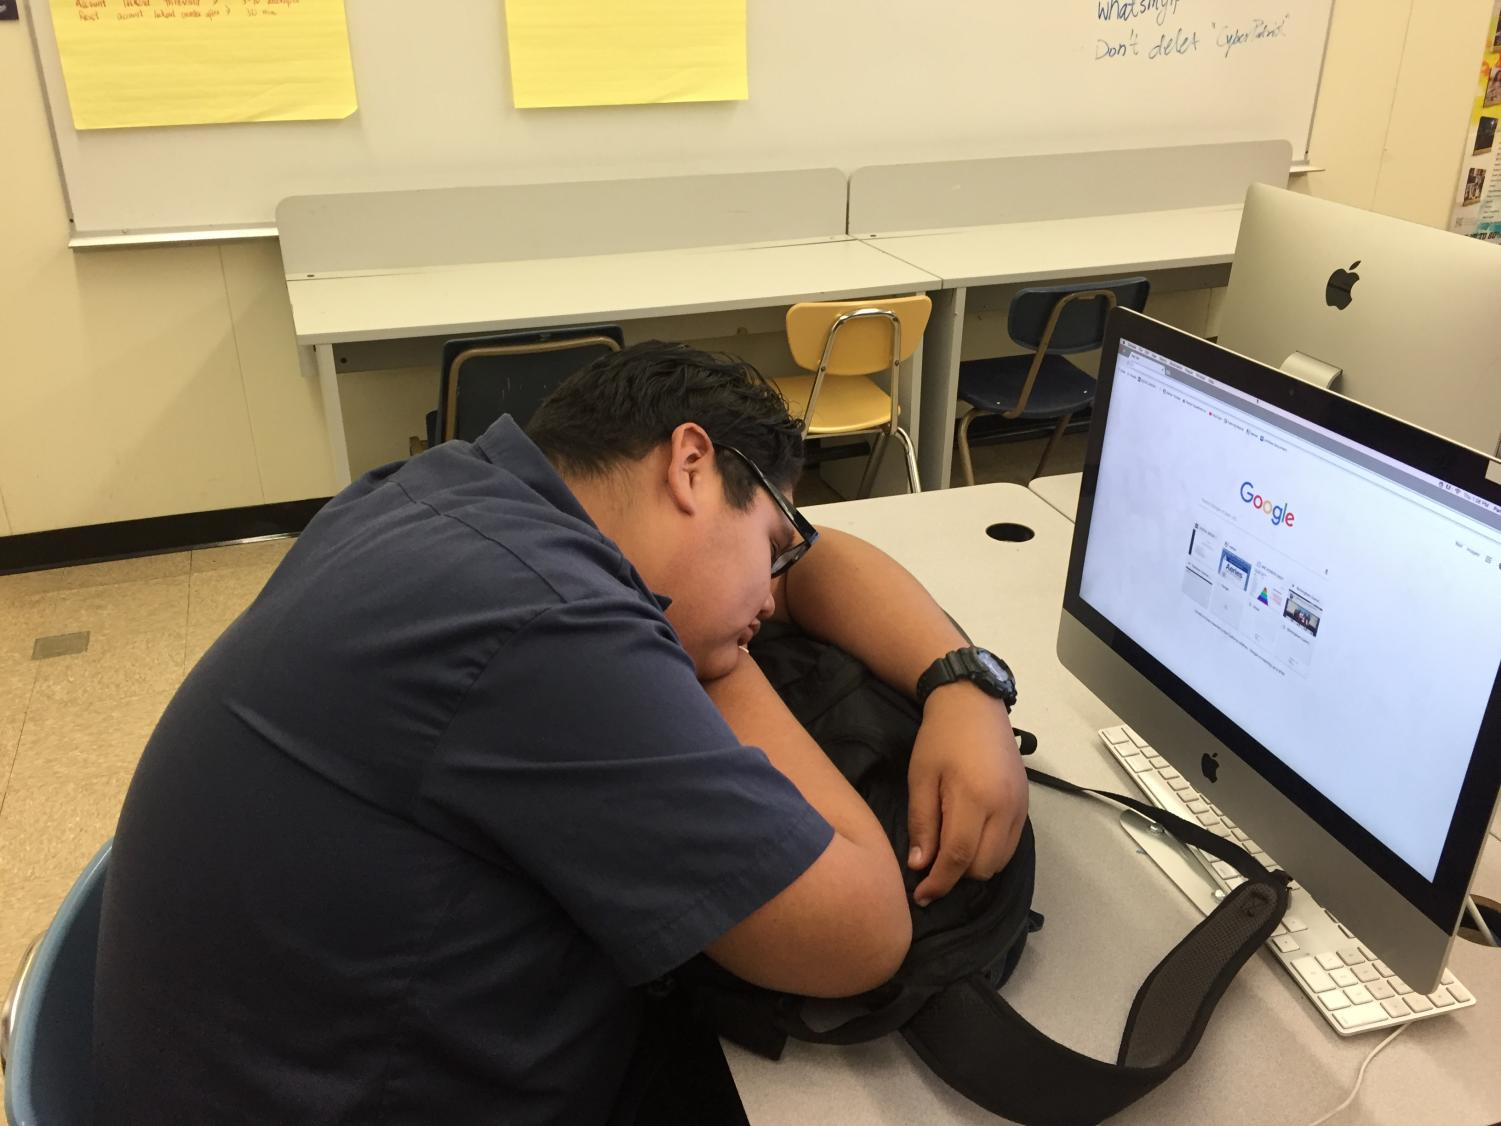 Senioritis at its finest!  Instead of doing school work, this senior takes a nap in class.